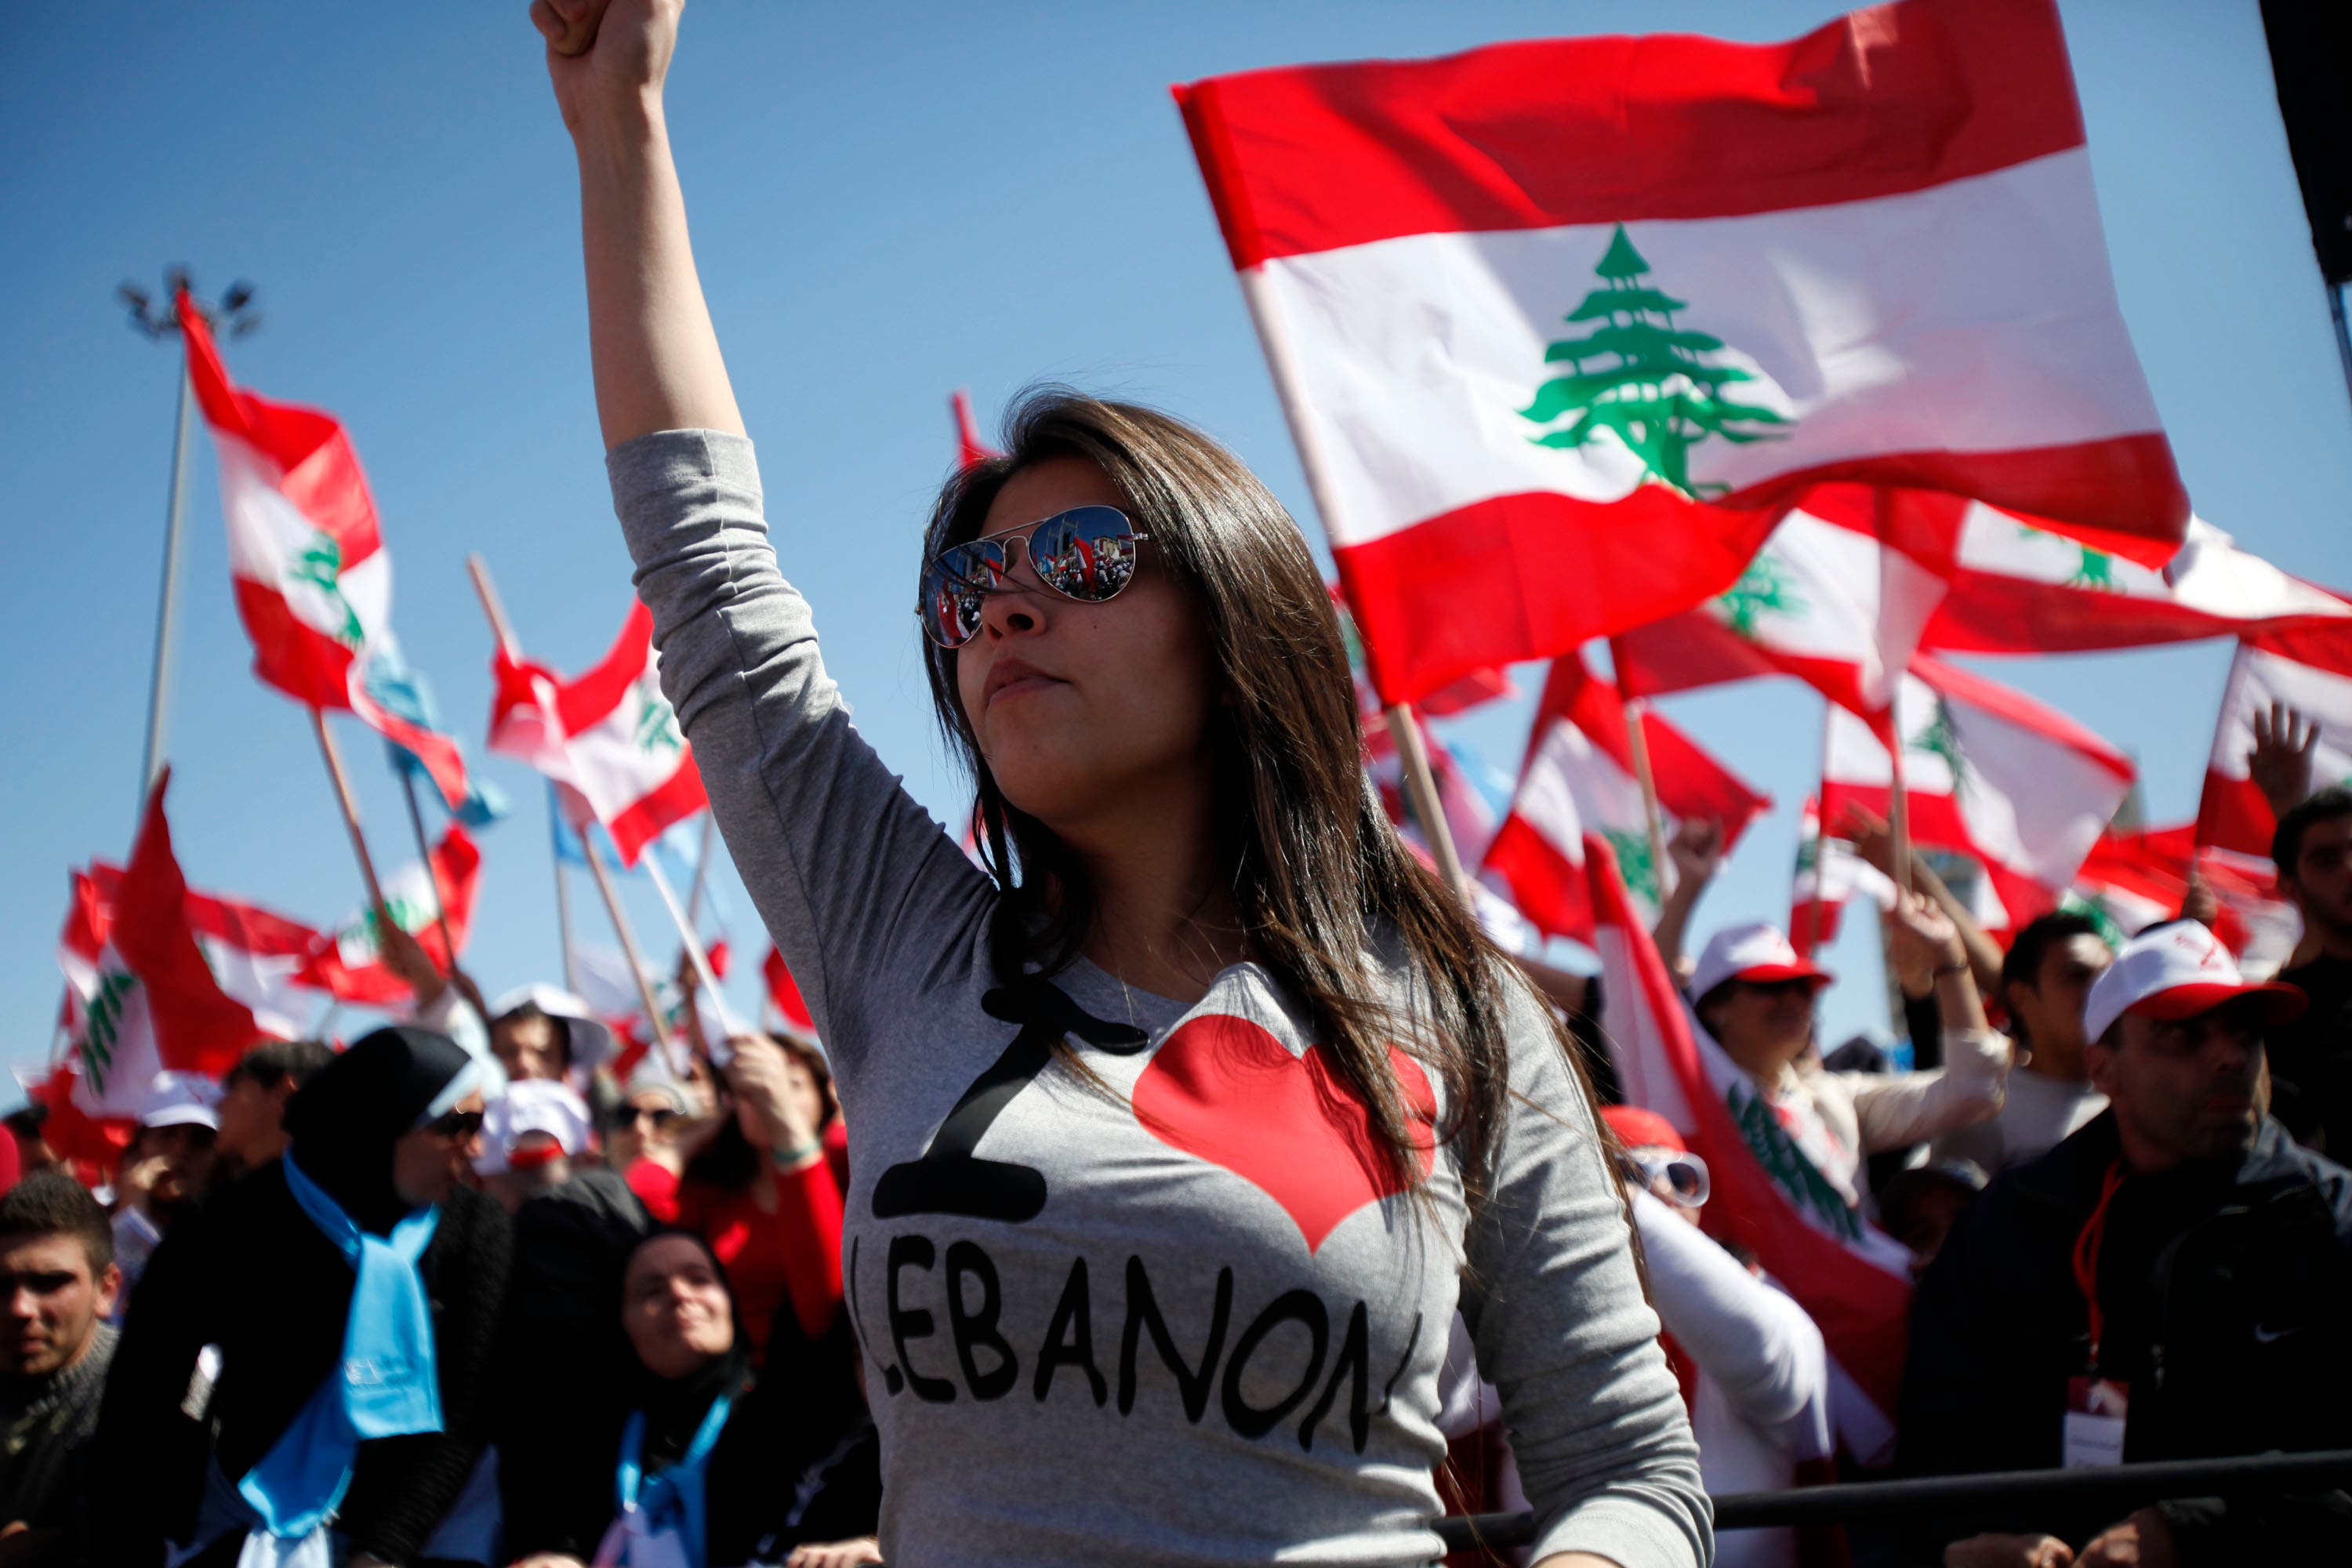 Lebanon feels Syria distress, and will no doubt respond to this tremor more than to general regional instability.